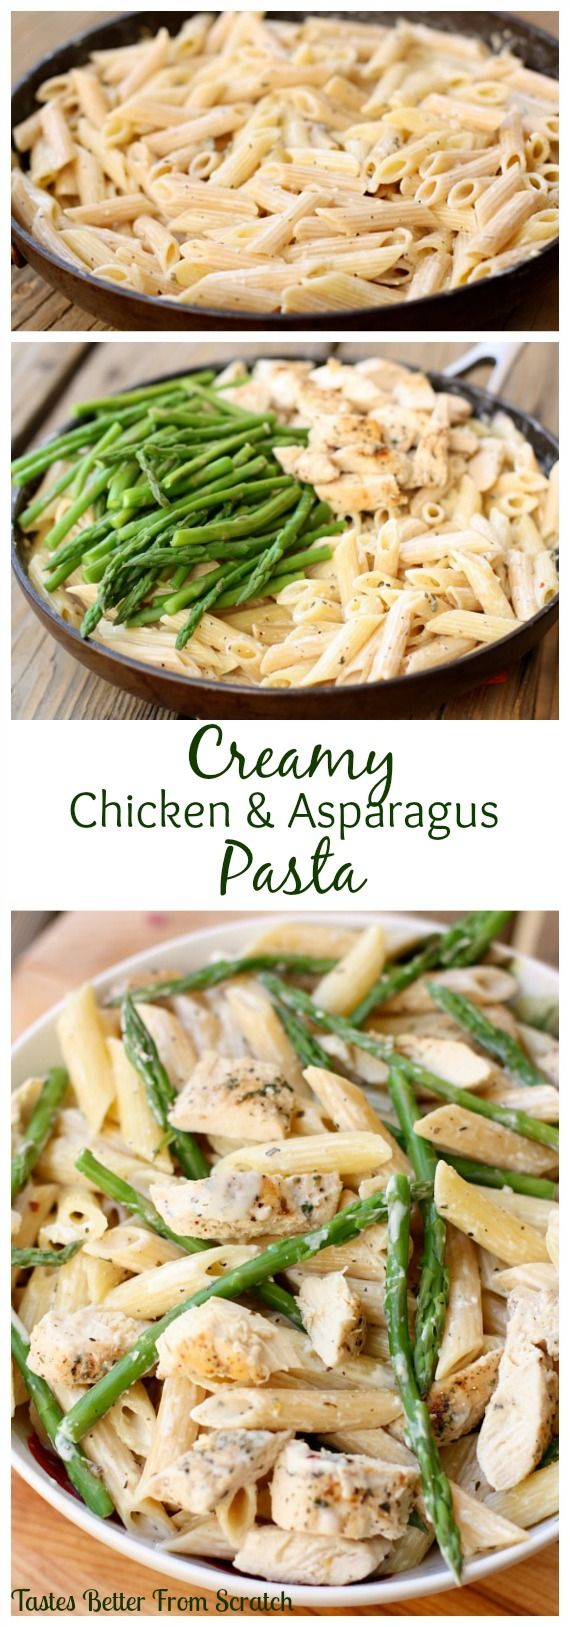 Creamy Chicken and Asparagus Pasta recipe from TastesBetterFromScratch.com #30minutemeals #pasta